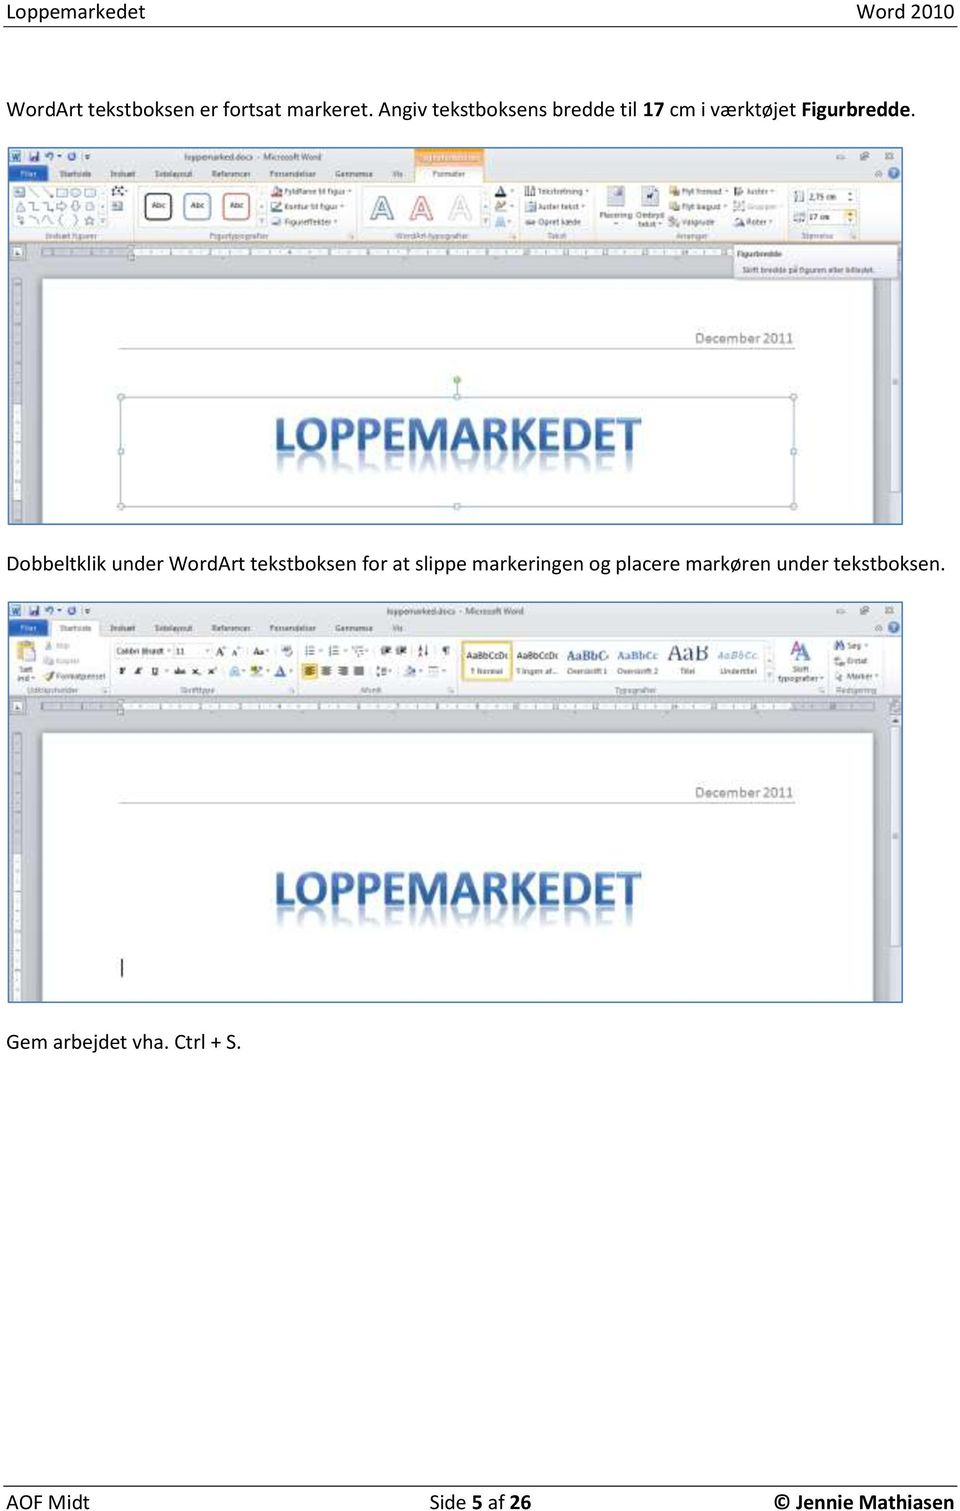 Dobbeltklik under WordArt tekstboksen for at slippe markeringen og